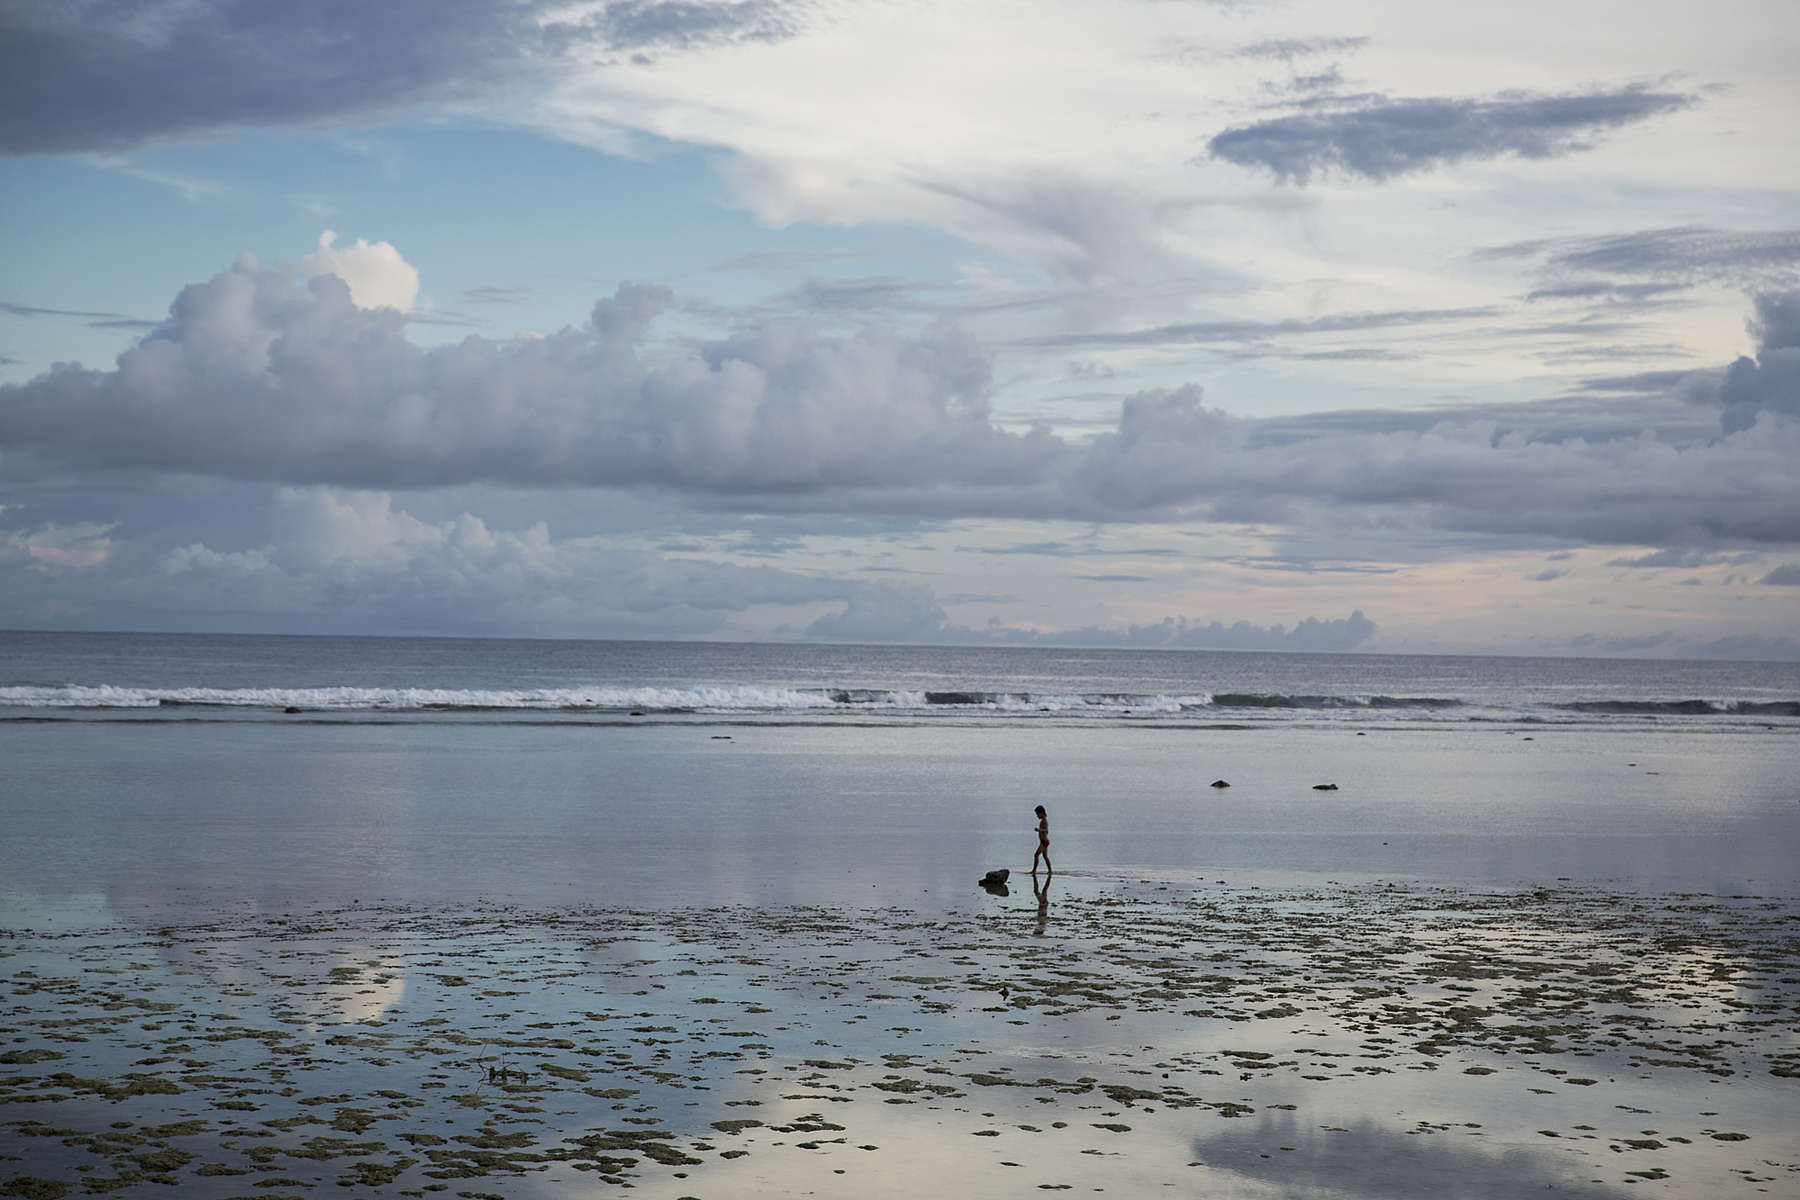 A child walks along the beach at sunset in n Bikenibeu village on South Tarawa island, Kiribati.